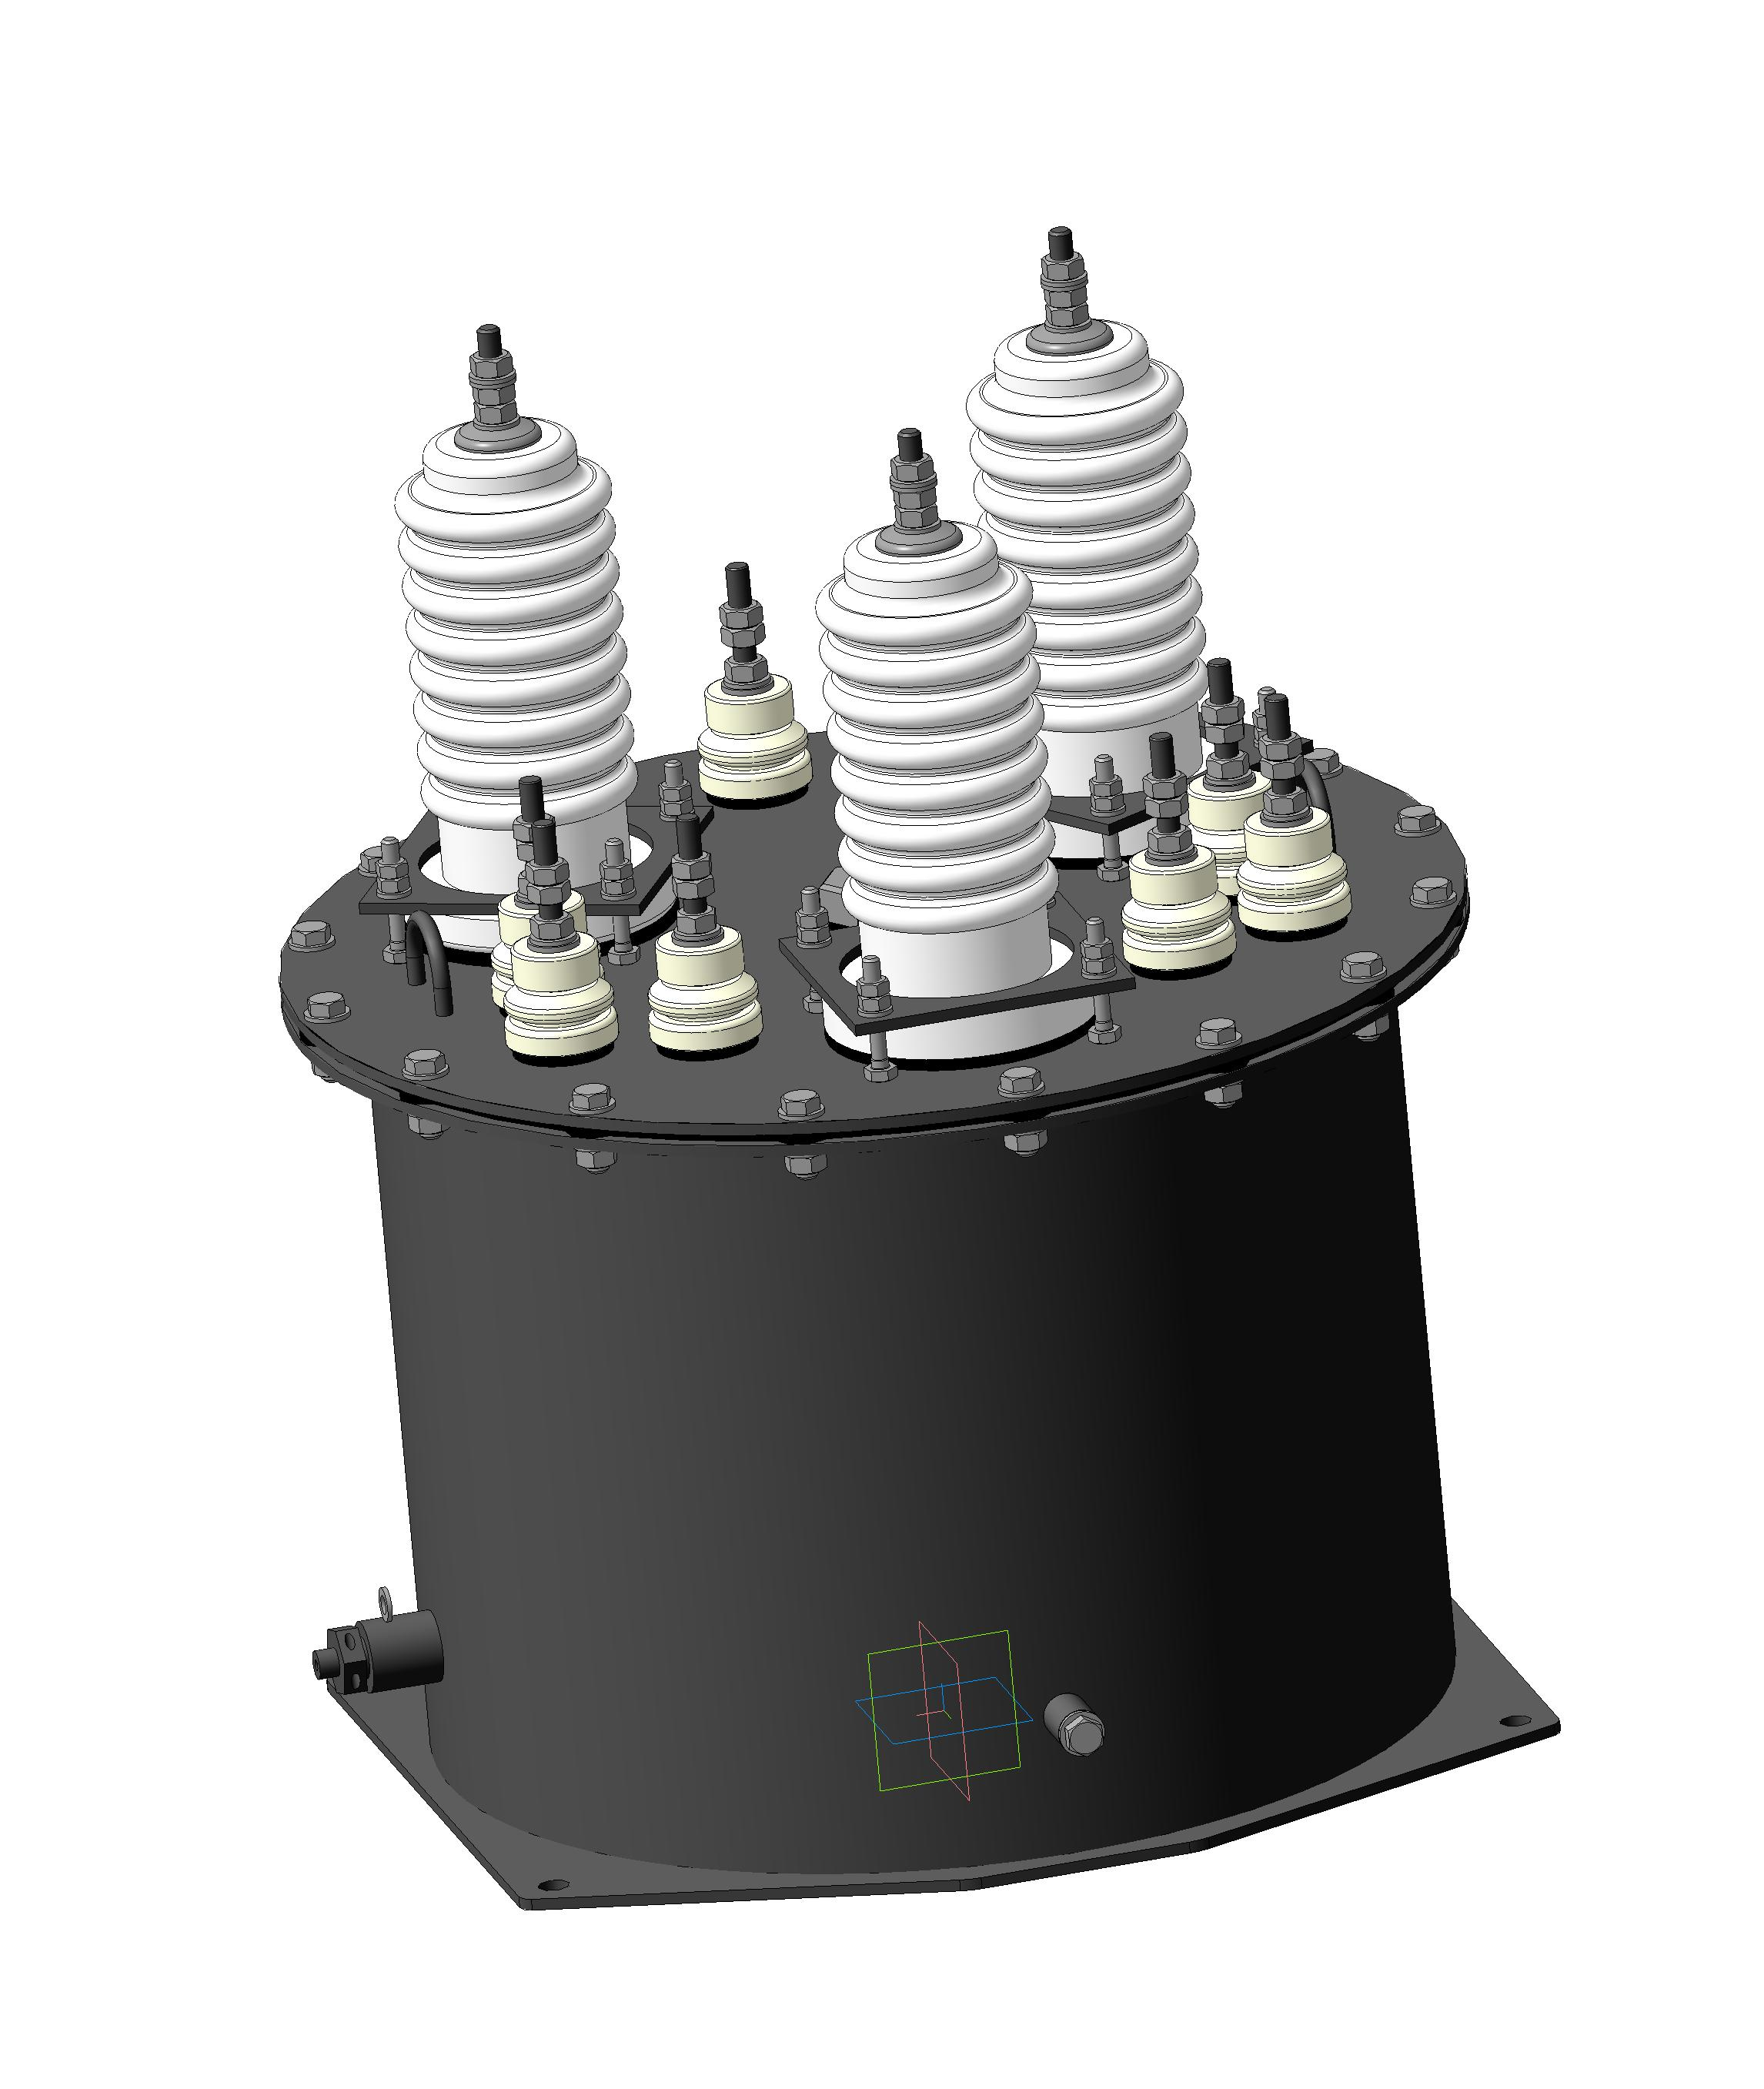 6-10 kV Oil-immrsed voltage transformers, НТМИ-1, НАМИ-1 types